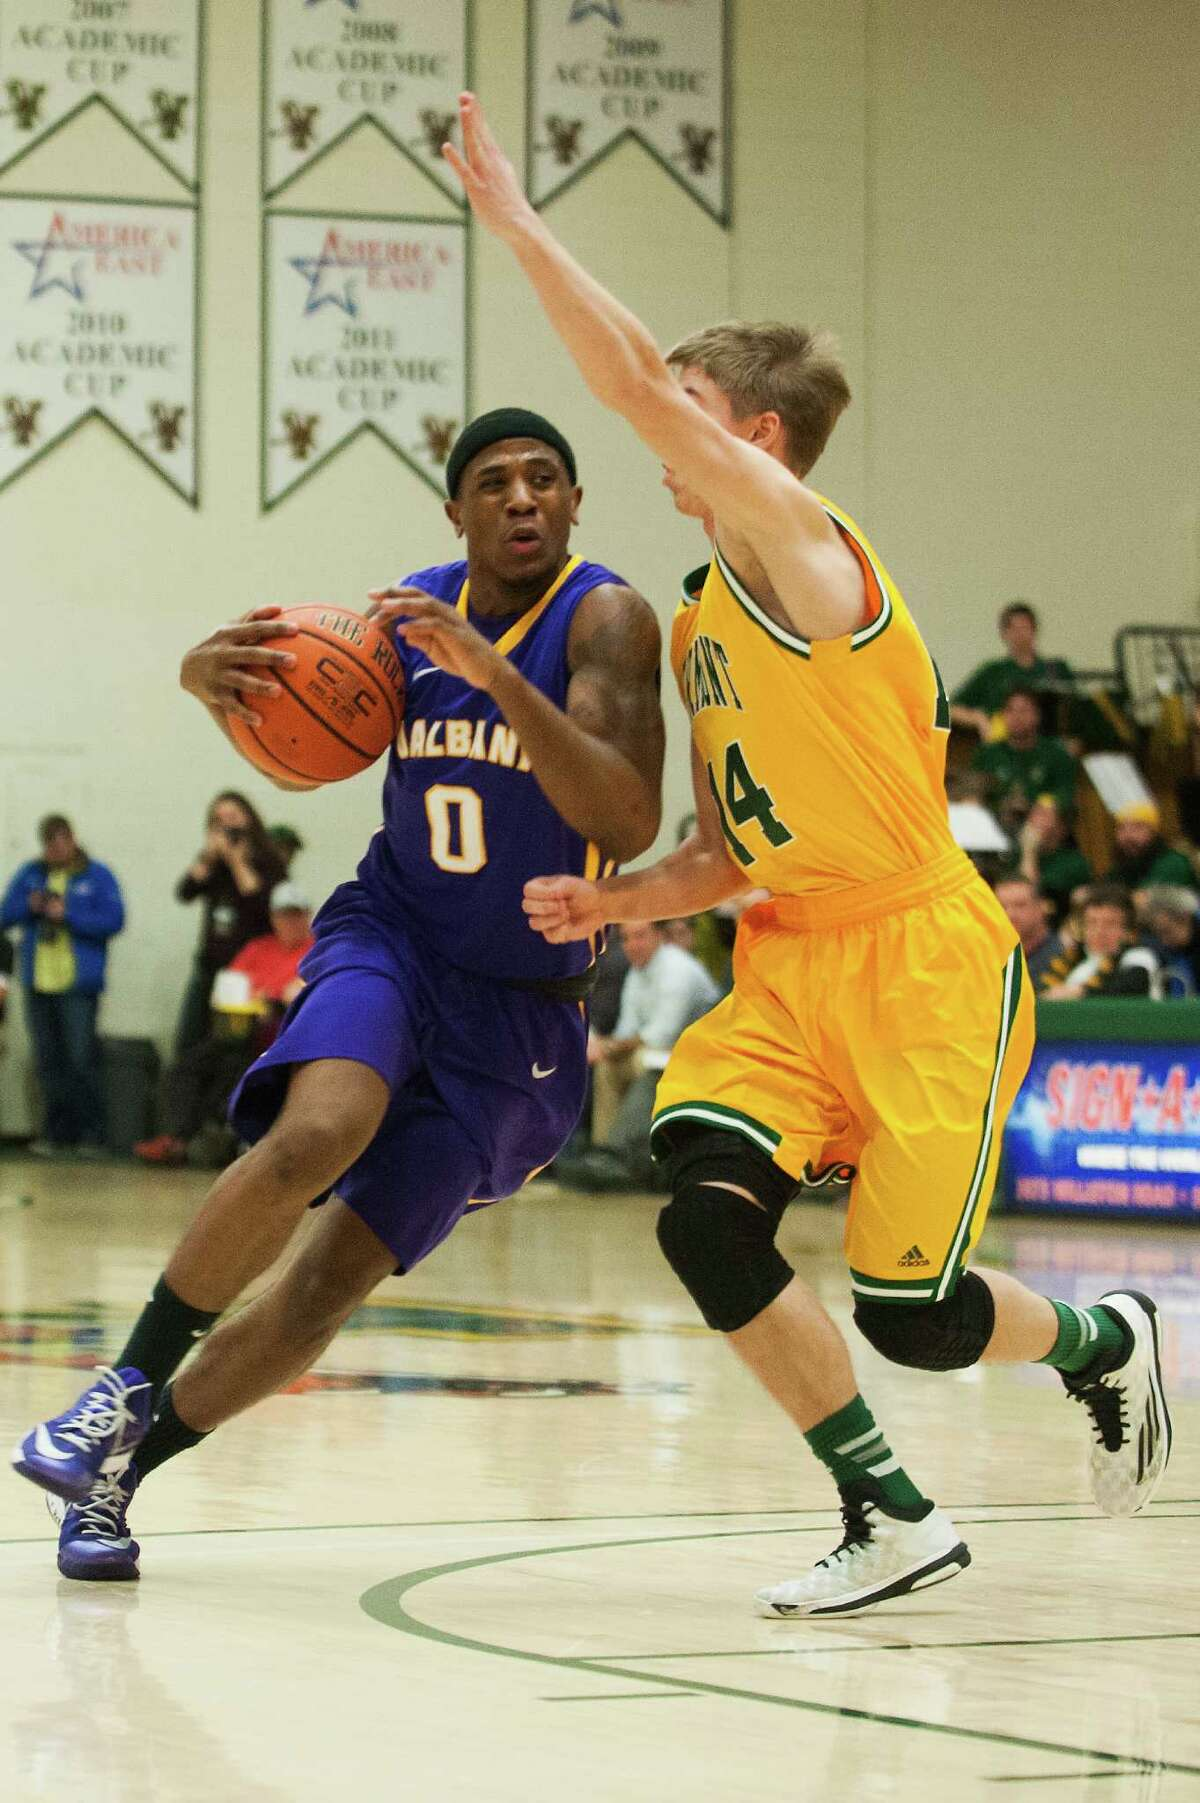 UAlbany guard Evan Singletary drives to the basket past Vermont guard Cam Ward during their men's basketball game at Patrick Gym on Wednesday, Jan. 28, 2015, in Burlington, Vt. (Brian Jenkins / Special to the Times Union)